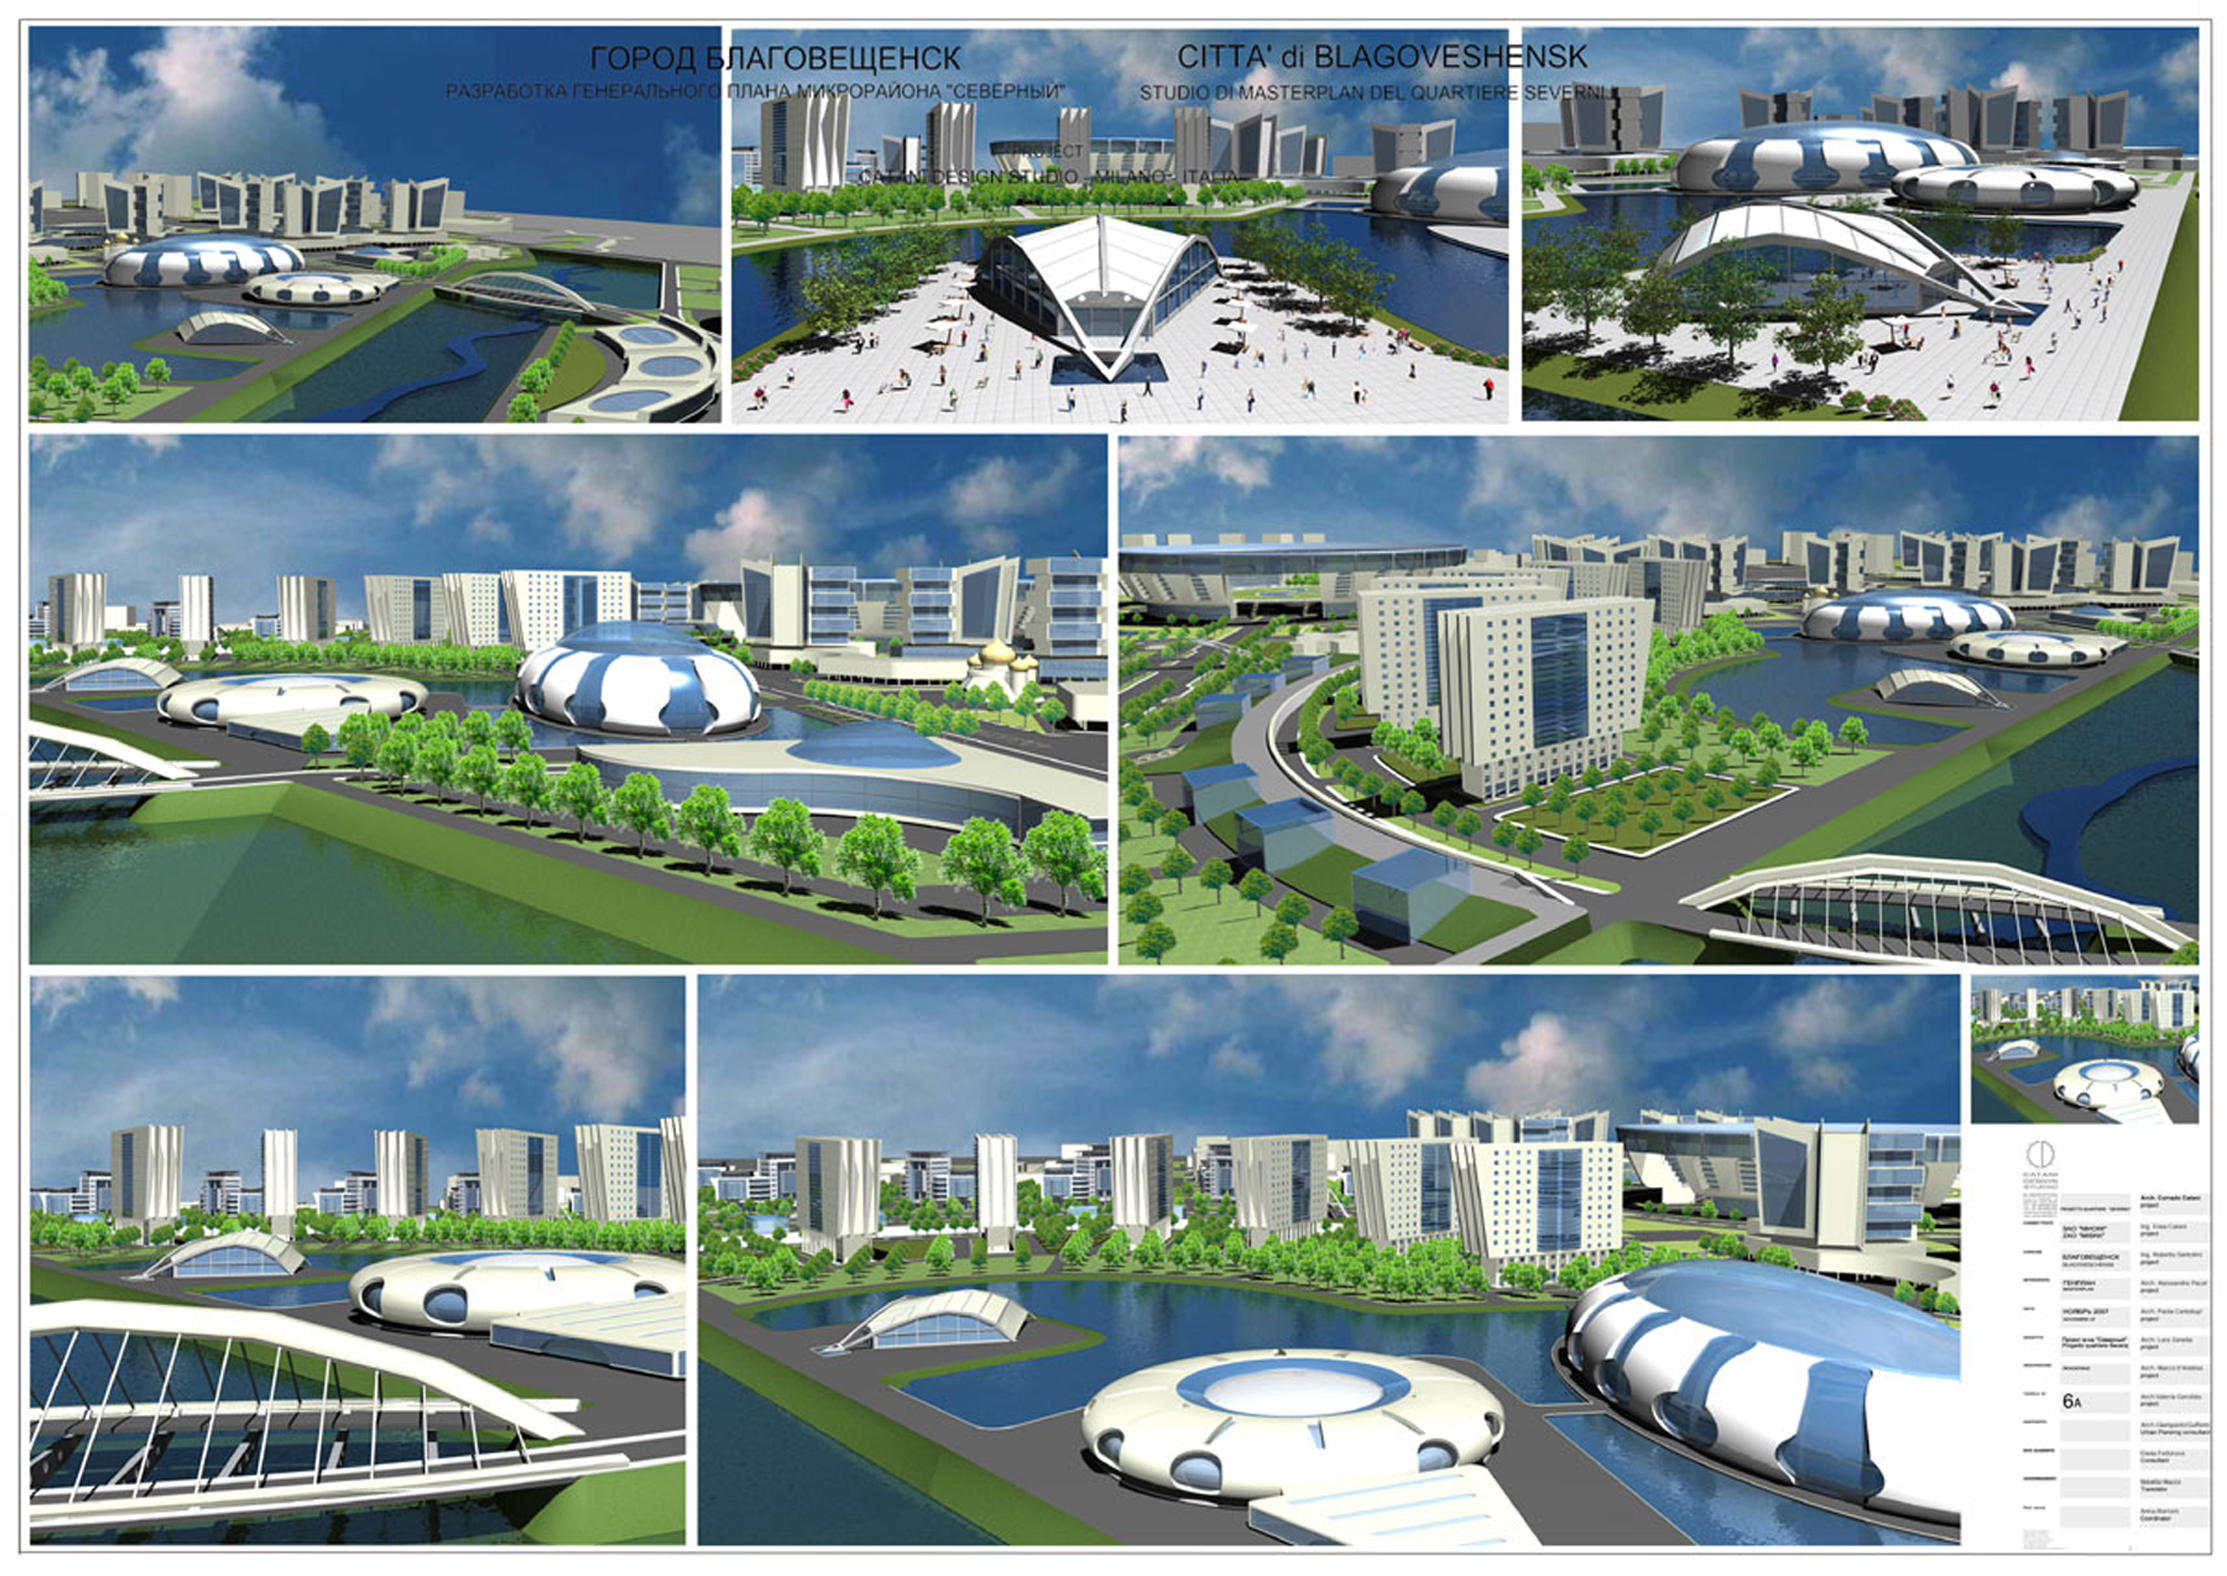 Rendering Urban Project Blagoweschensk Russia